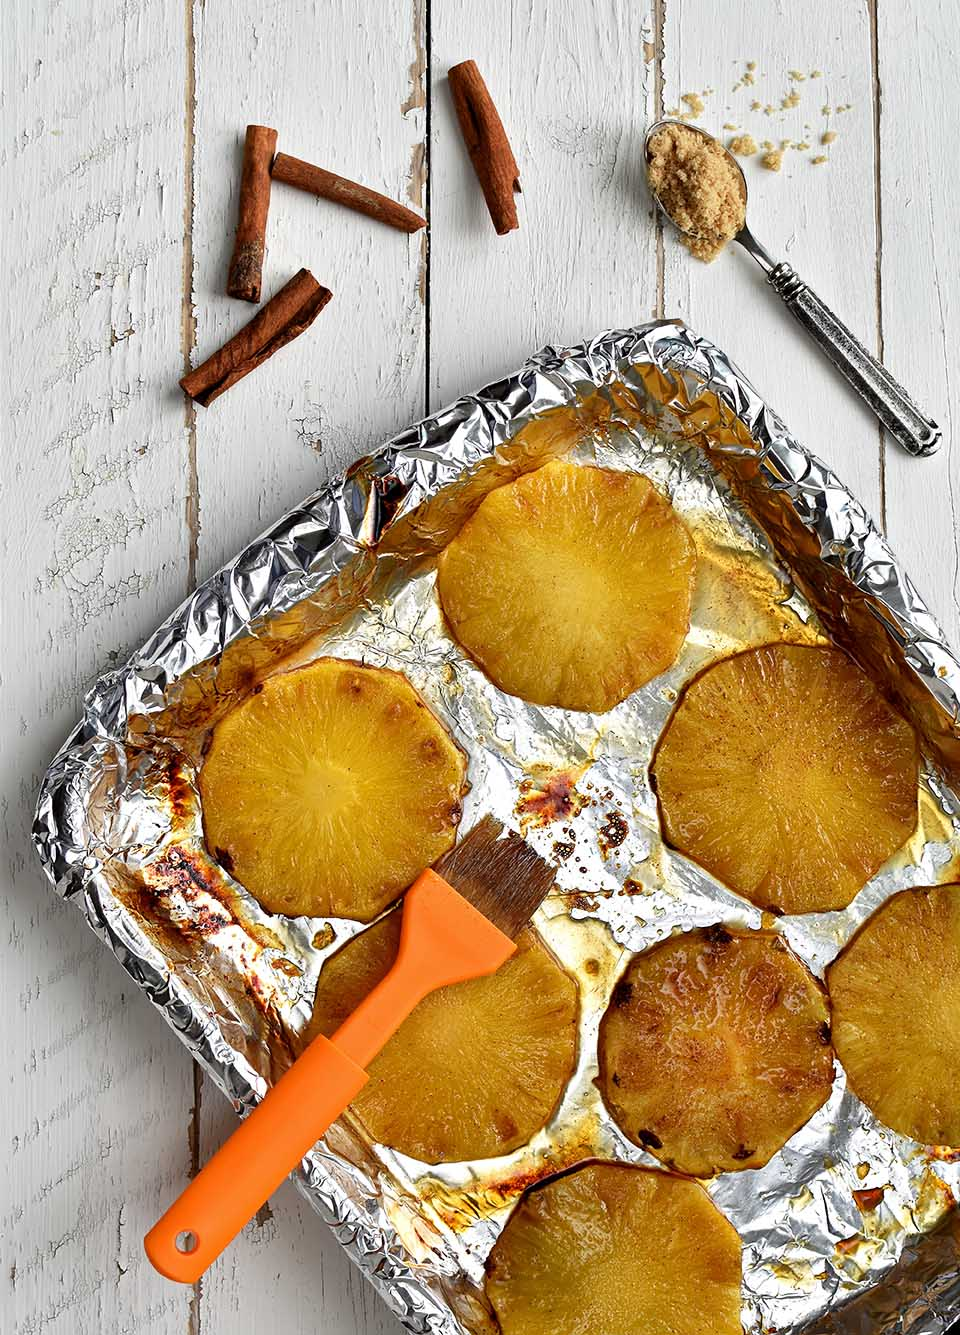 Grilled Pineapple with Cinnamon and Brown Sugar - Pepper Delight #pepperdelightblog #snacks #appetizer #grilling #grilledpineapple #pineapple #party #brazilianpineapple #dessert #barbeque #veggiegrilling #summer